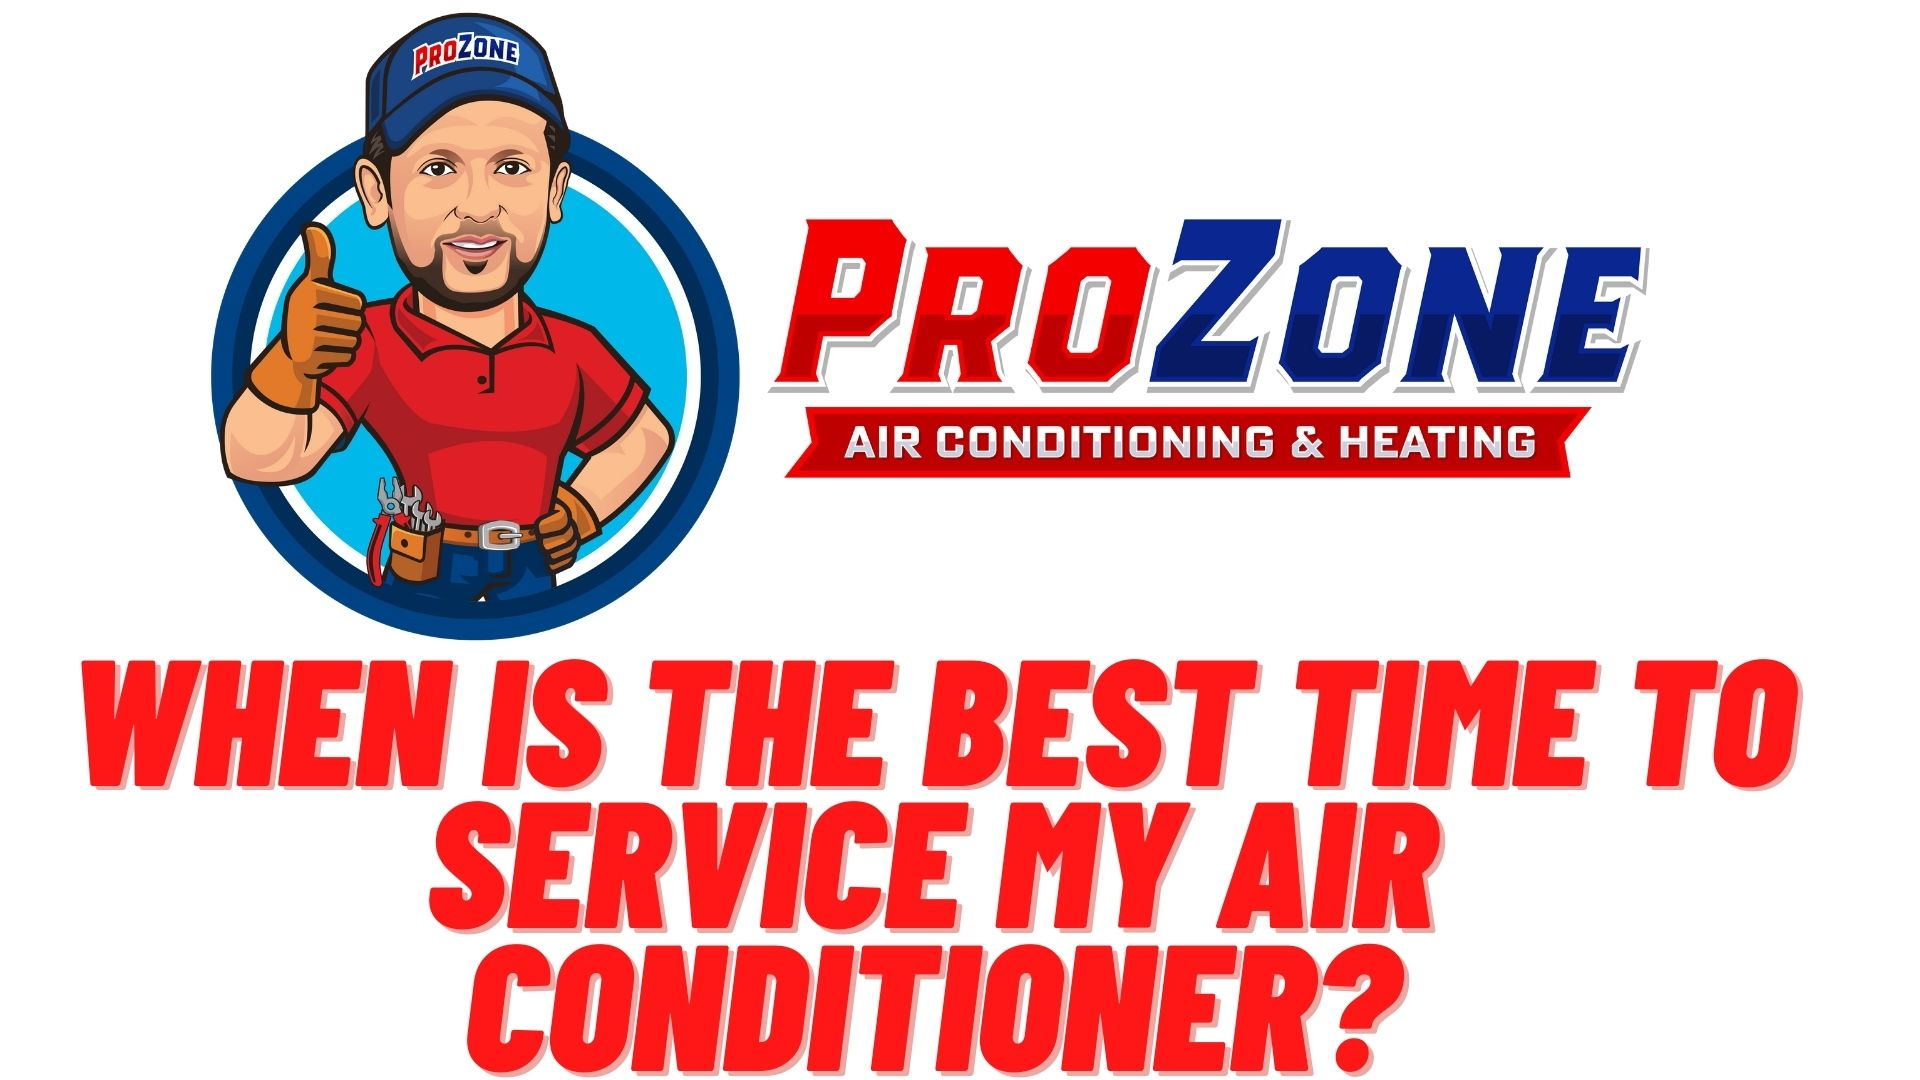 When is the Best Time to Service My Air Conditioner?